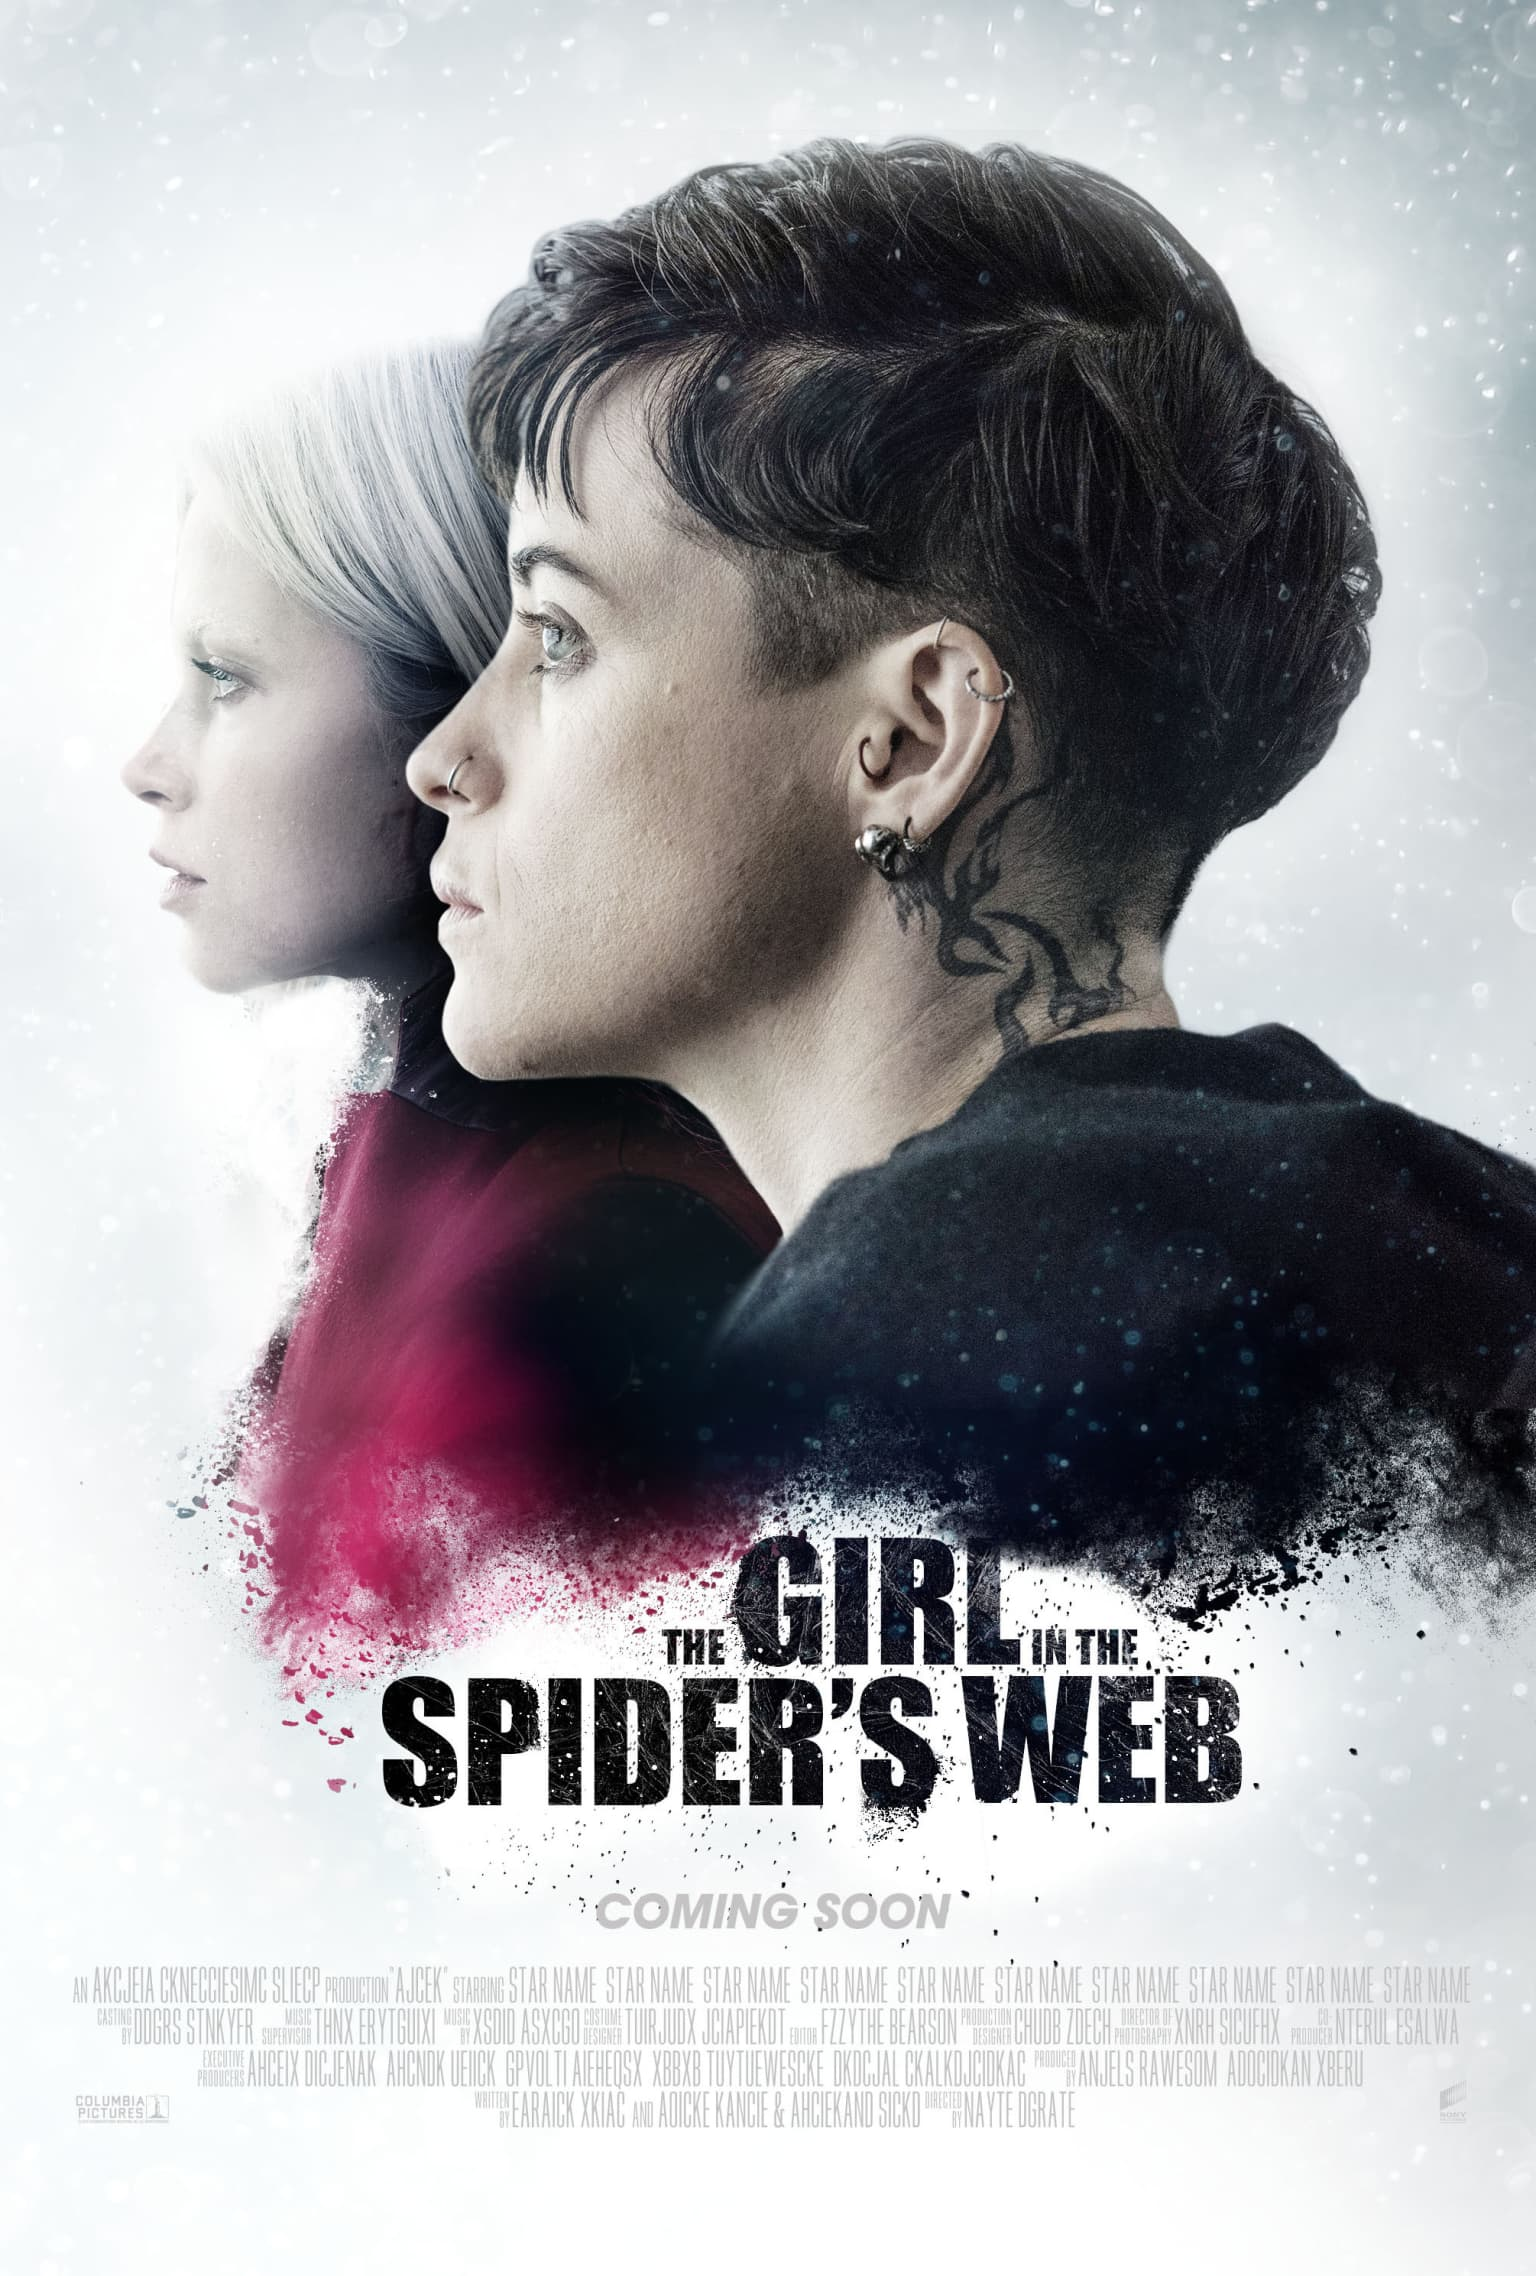 THE GIRL IN THE SPIDER'S WEB // Movie poster proposal